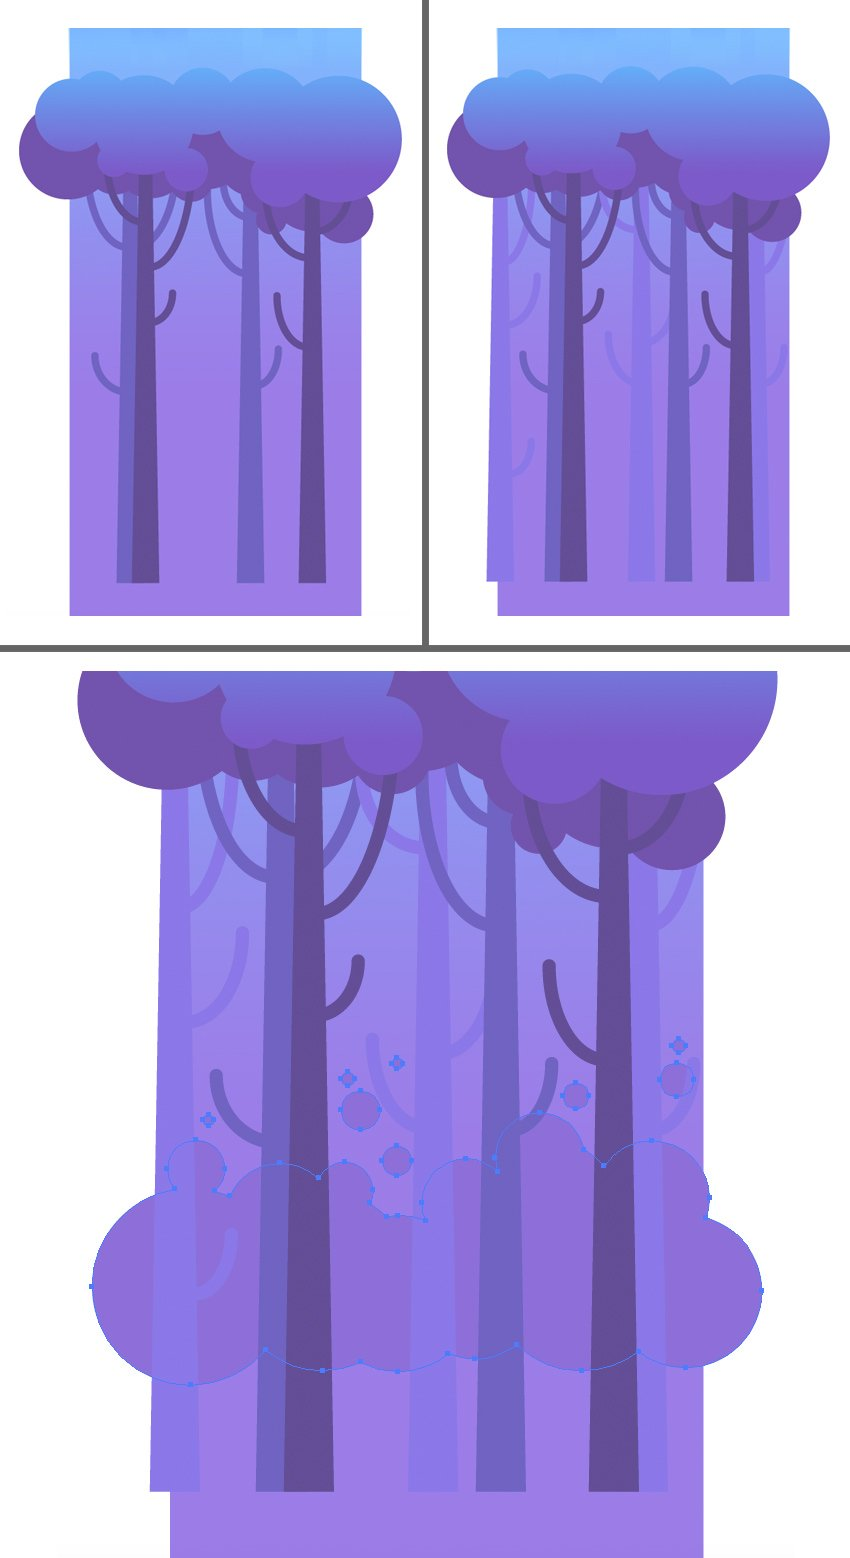 add more tree trunks